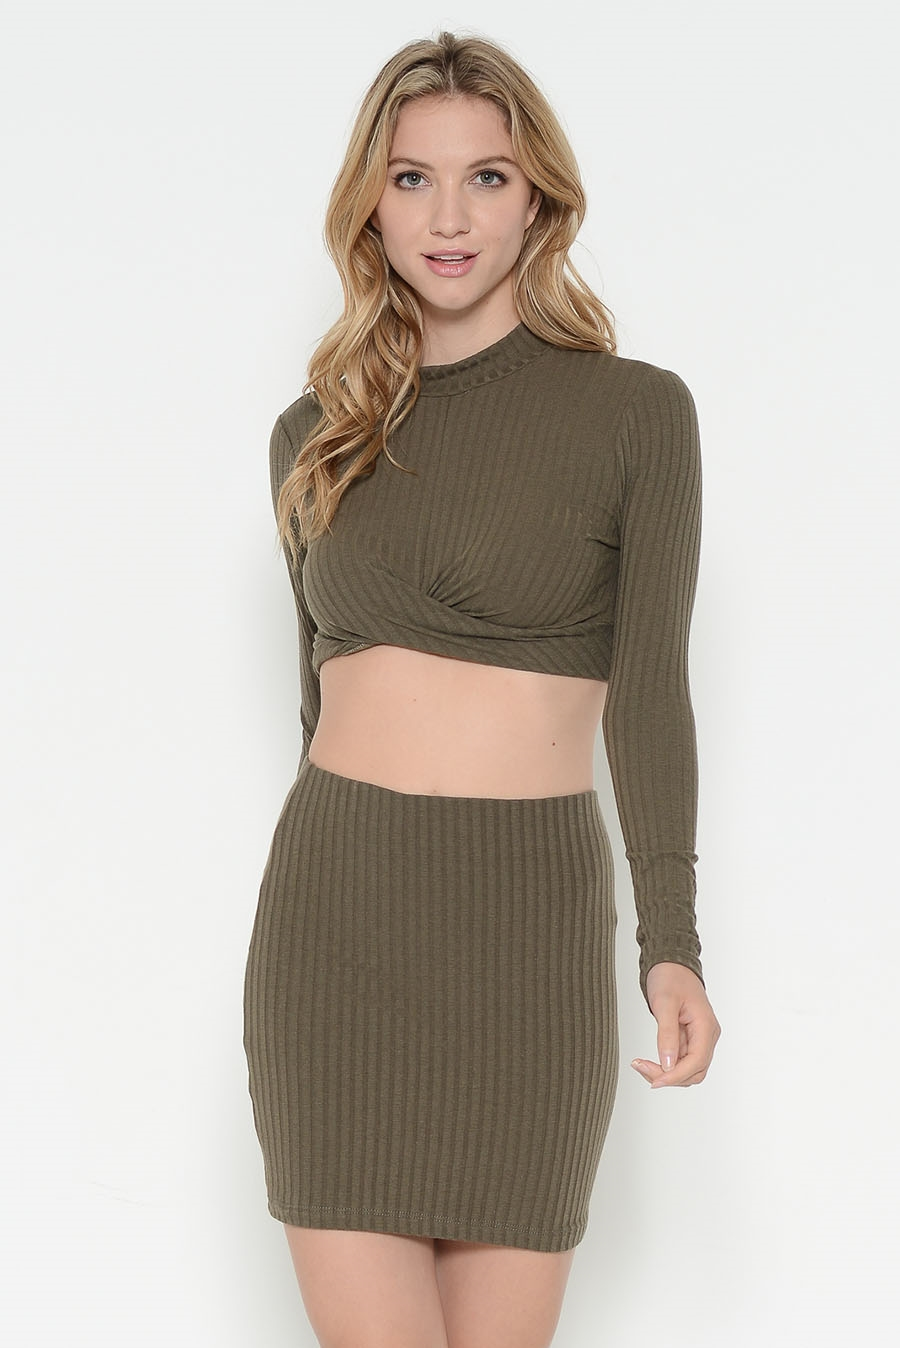 LONG SLV RIB MOCKNECK CROP TOP - orangeshine.com